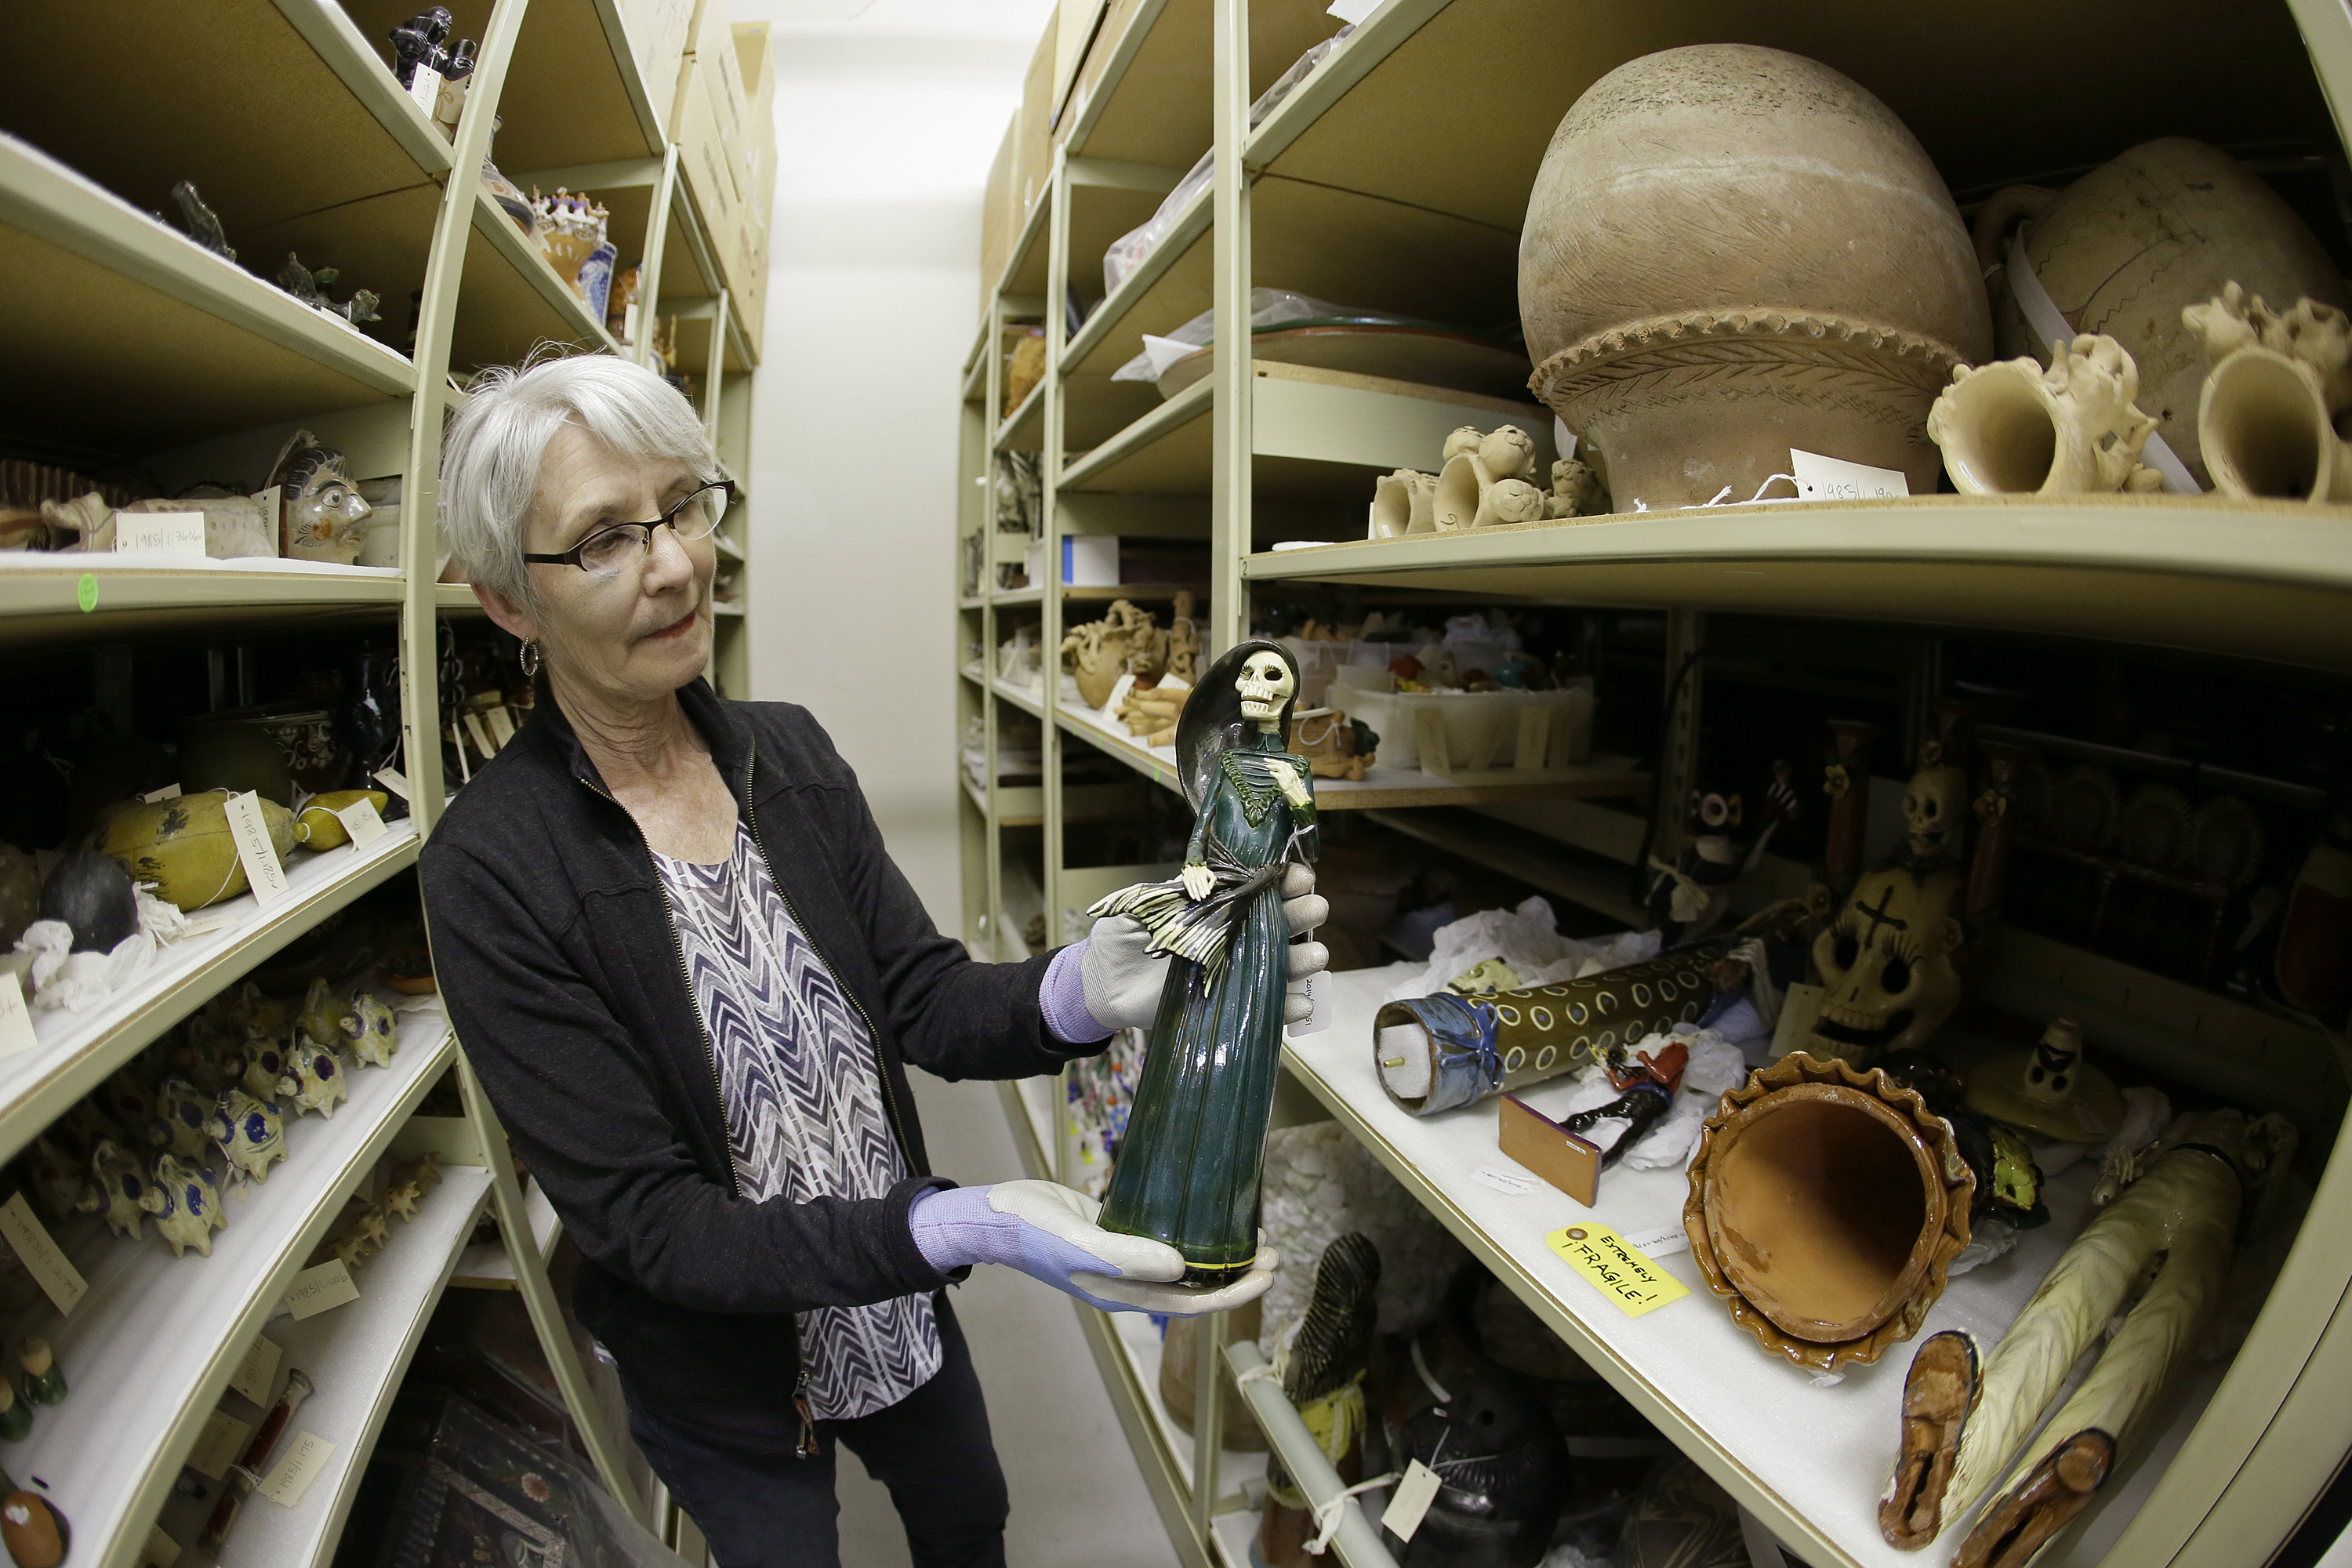 """In this photo taken Monday, June 27, 2016, registrar Wendy Niles holds a Day of the Dead sculpture """"La Soldadera"""" by Alvaro de la Cruz being stored in a vault at the Mexican Museum currently located at Fort Mason in San Francisco. Construction of a four-story, state-of-the-art Mexican Museum is underway, realizing the dream of a late Mexican-American artist who four decades ago opened the city's first museum for Latino art in a Mission District storefront. The 60-000 square feet building in downtown San Francisco will be home to 16,000 pre-Columbian, colonial, modern and contemporary works of Mexican, Mexican-American and Latino art, the largest such collection in the country. (AP Photo/Eric Risberg)"""